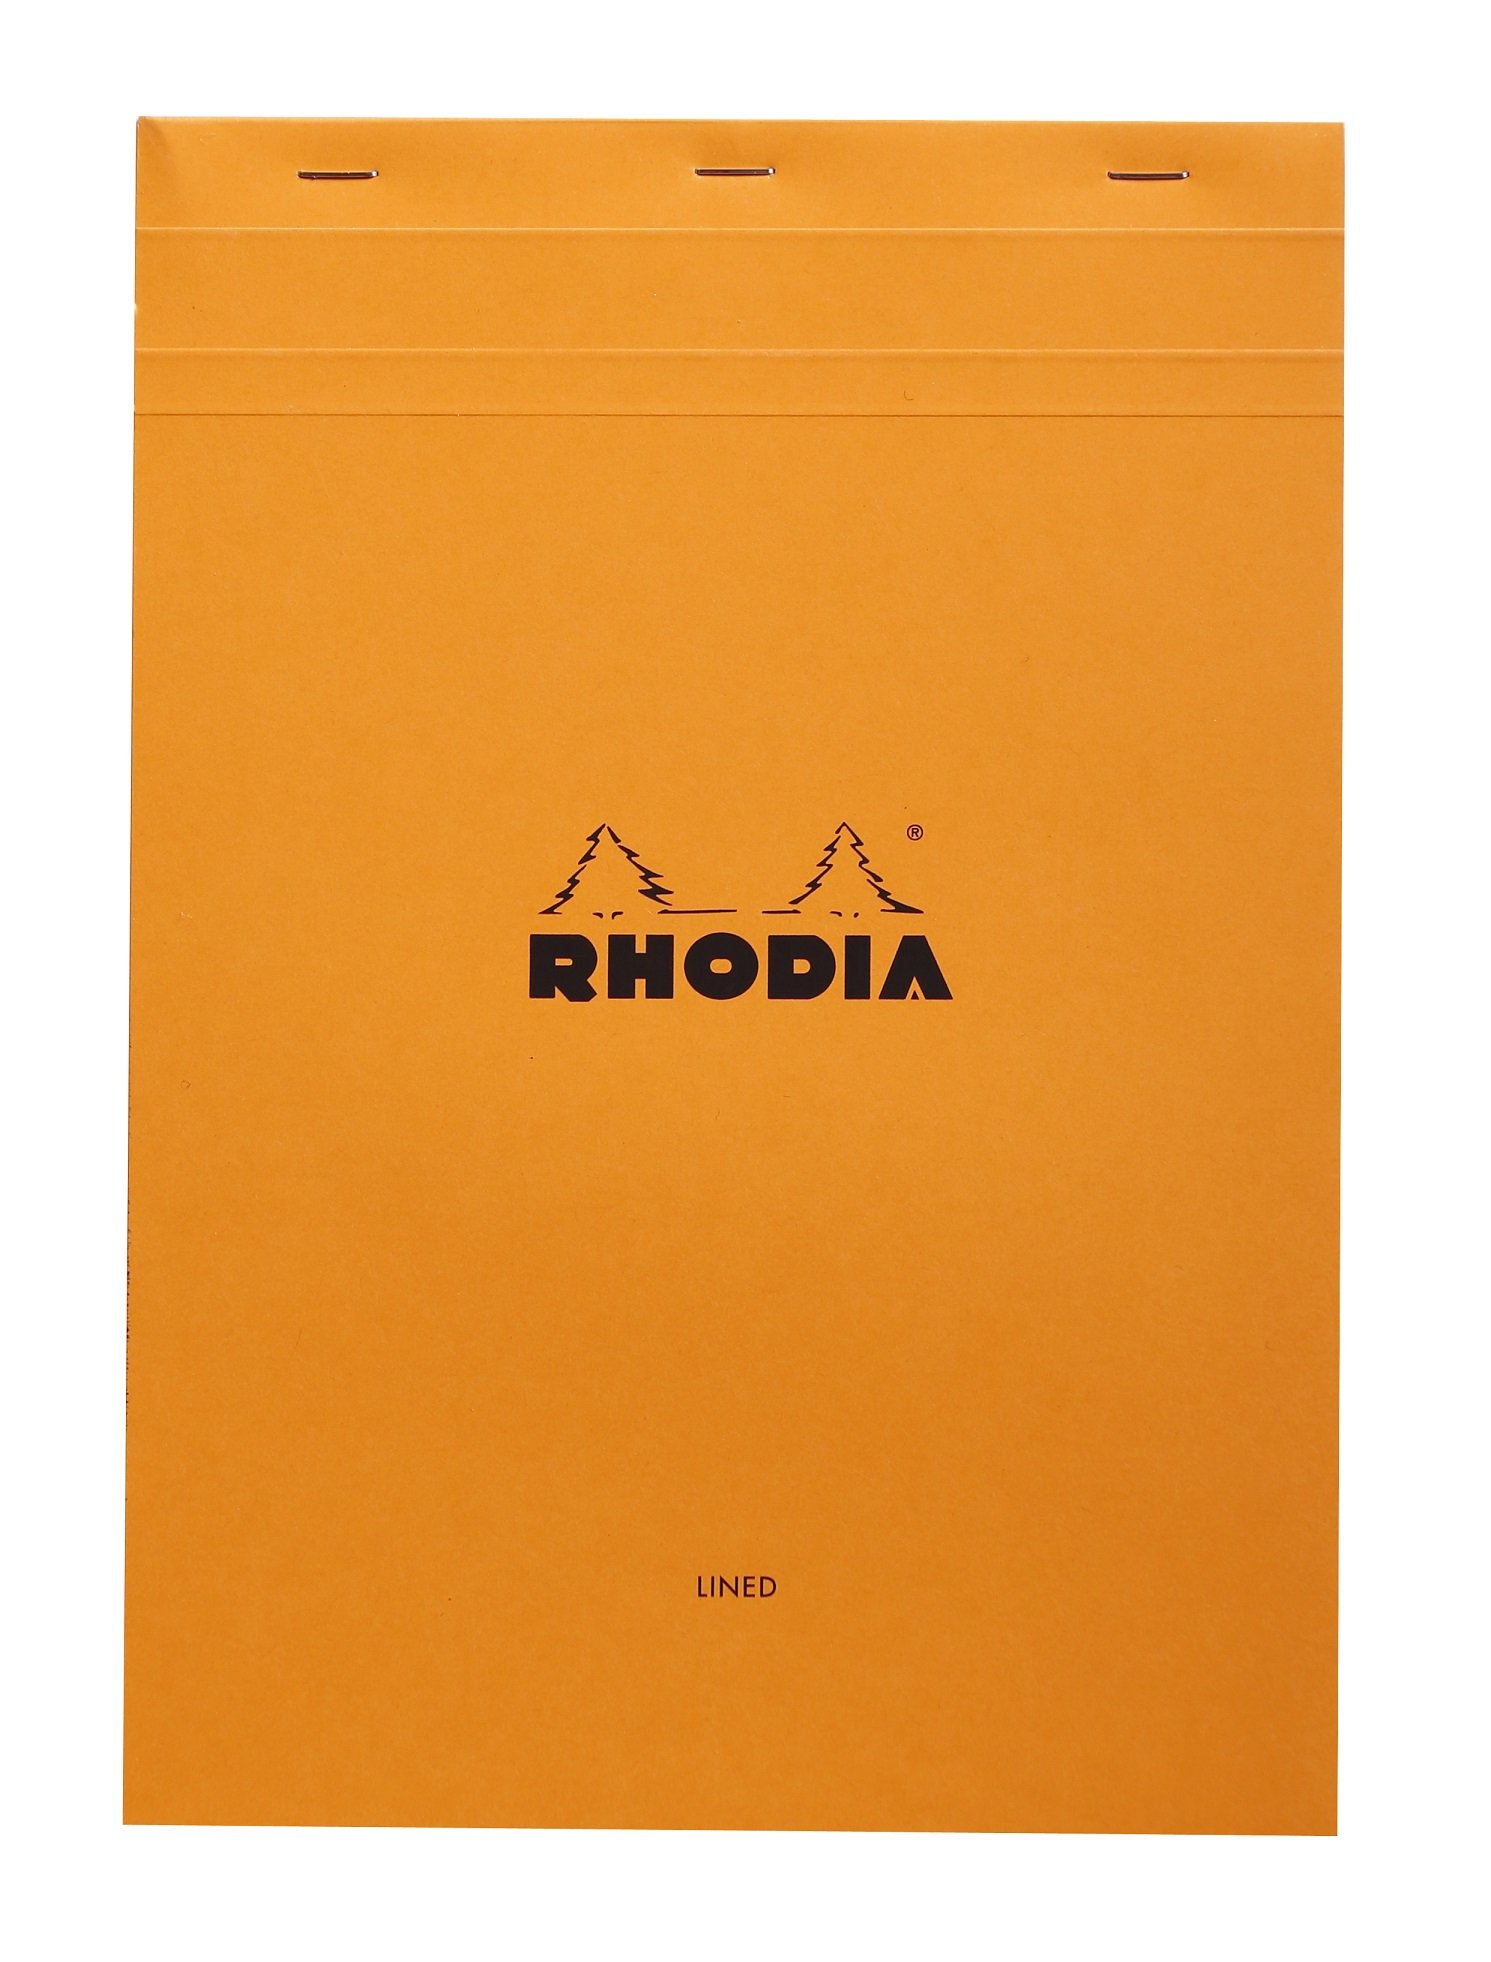 Rhodia Staplebound Notepads - Lined w/ margin 80 sheets - 8 1/4 x 11 3/4 in. - Orange cover by Rhodia